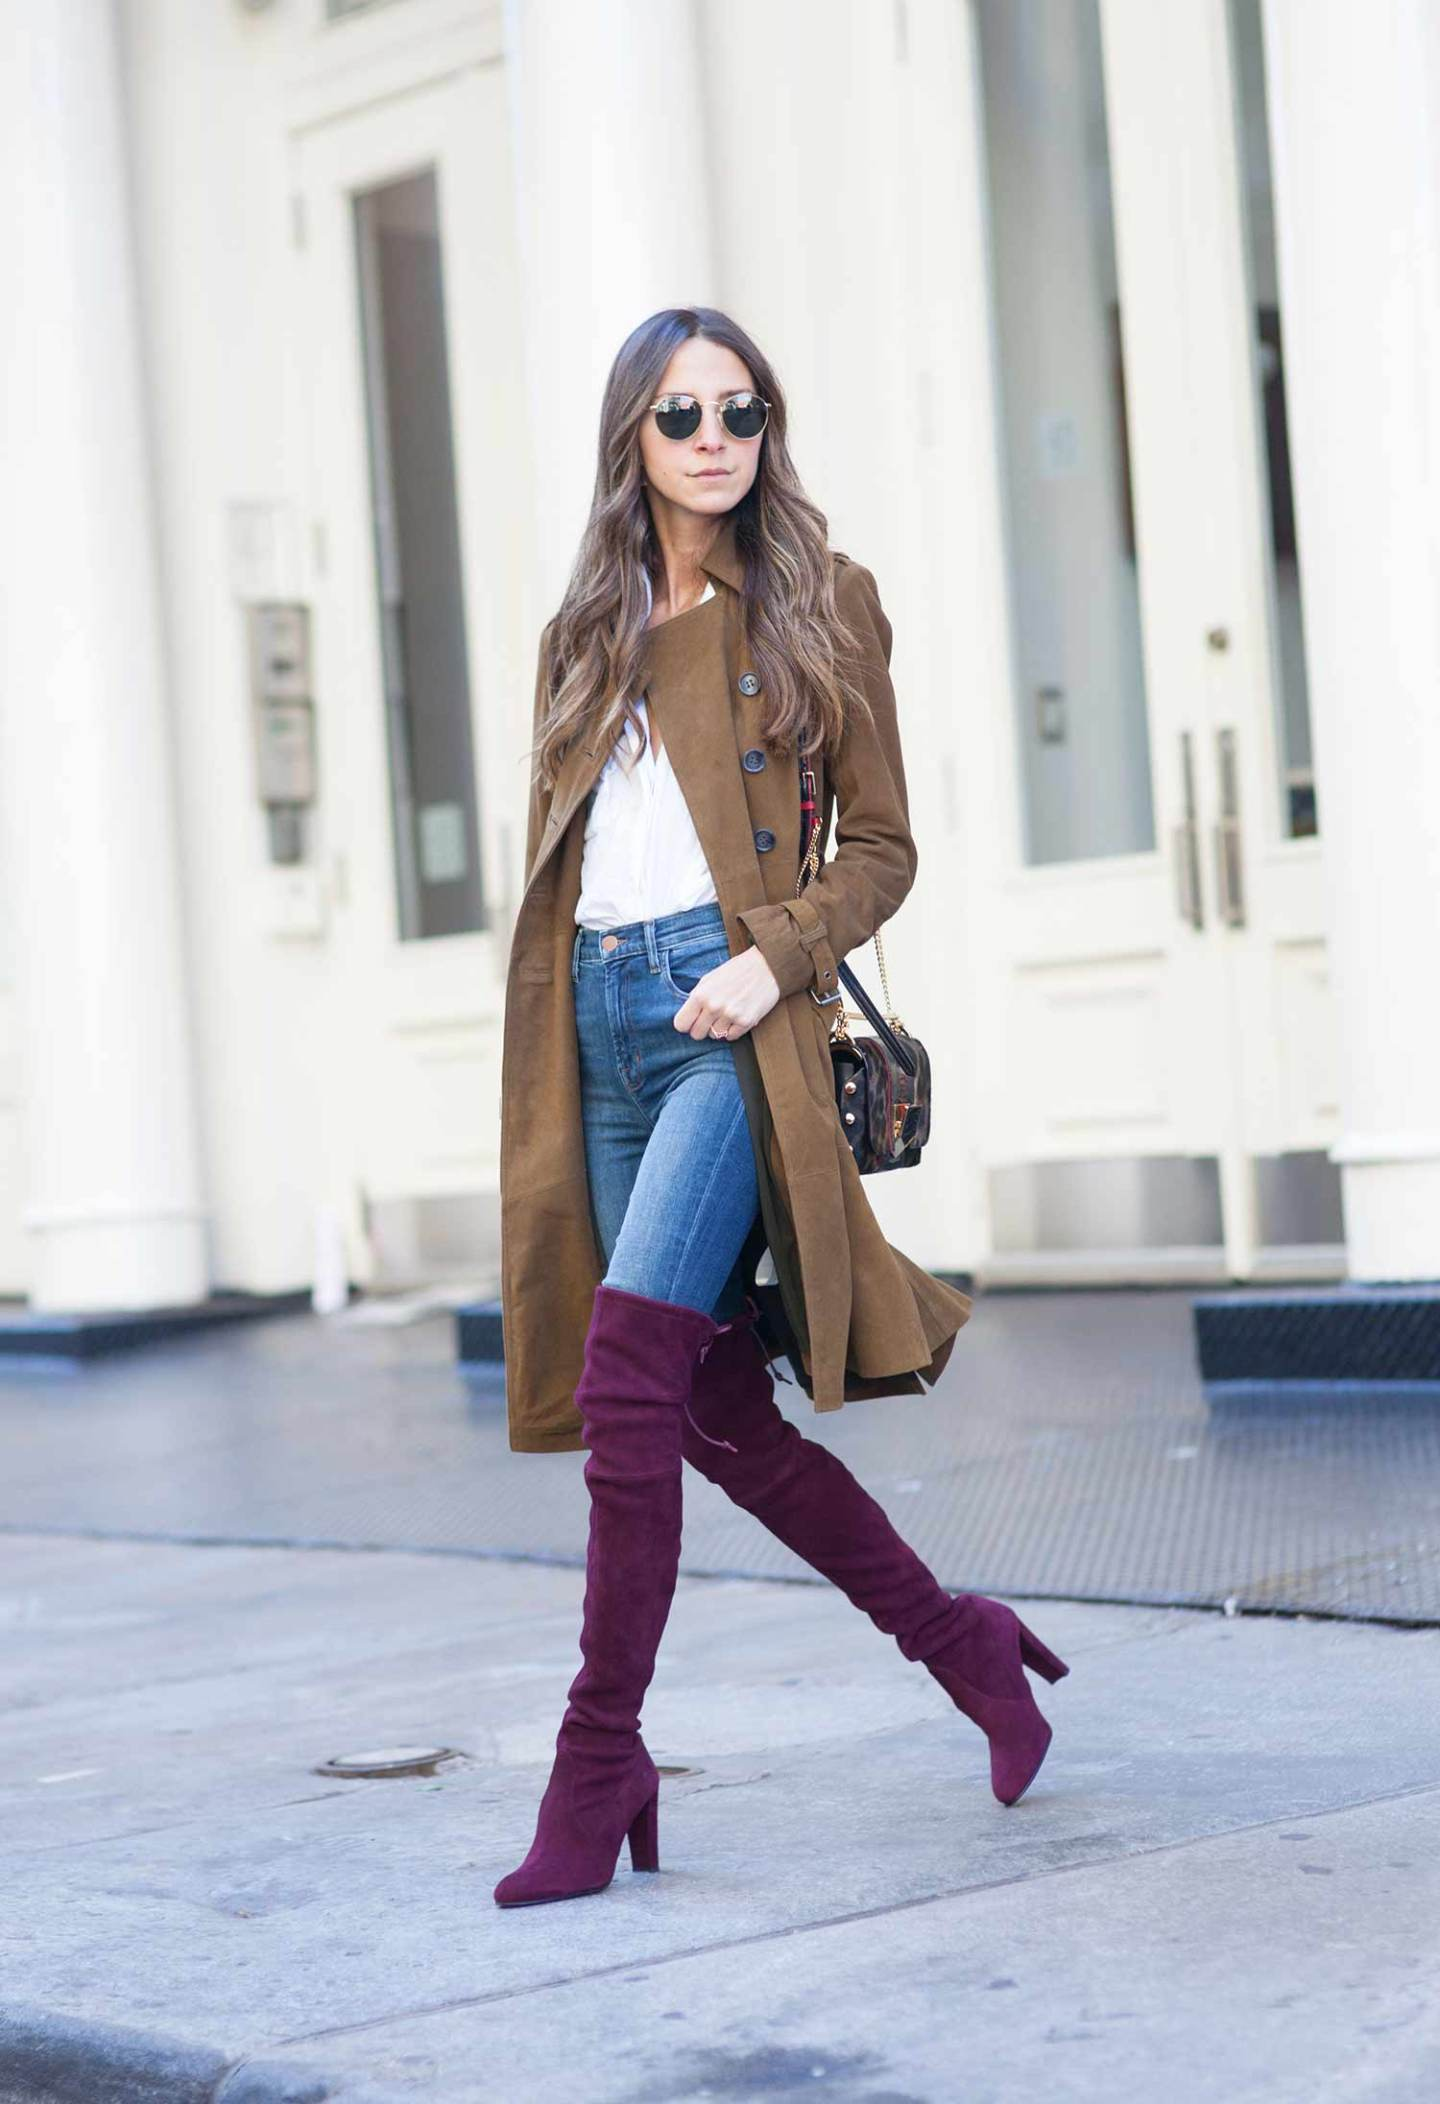 How To Wear Jeans With Tall Boots